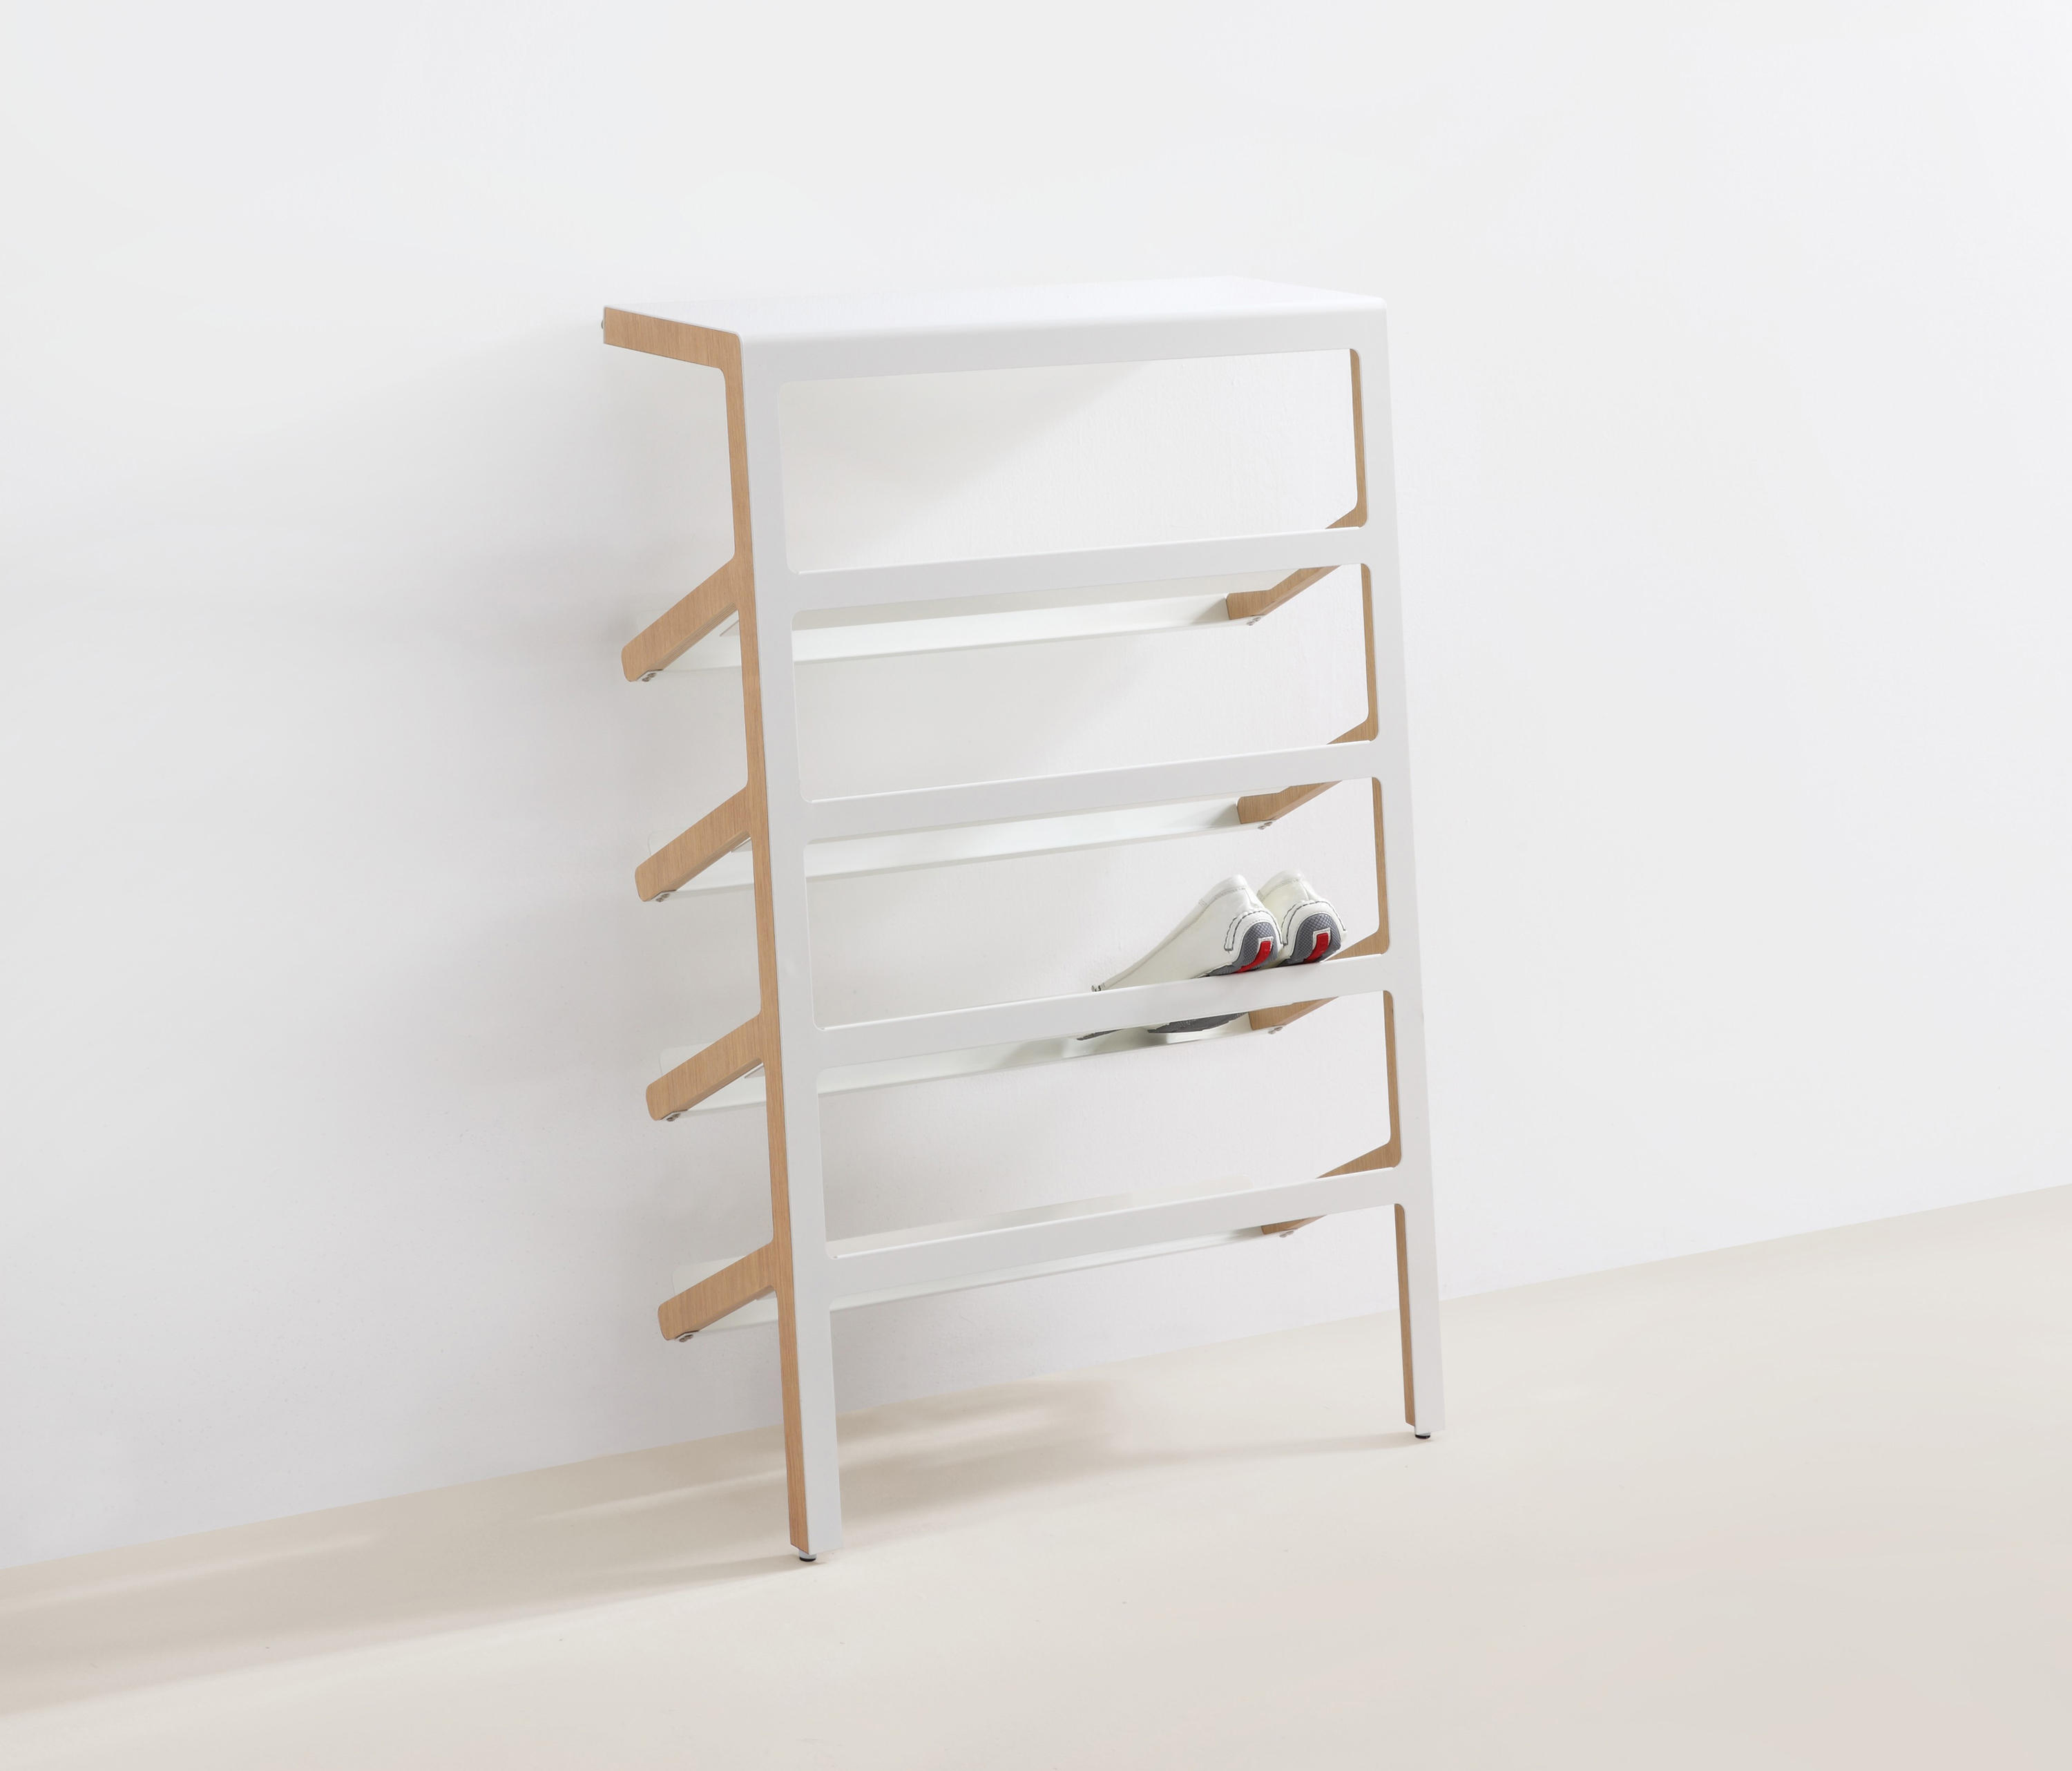 mila by mox shoe cabinets racks